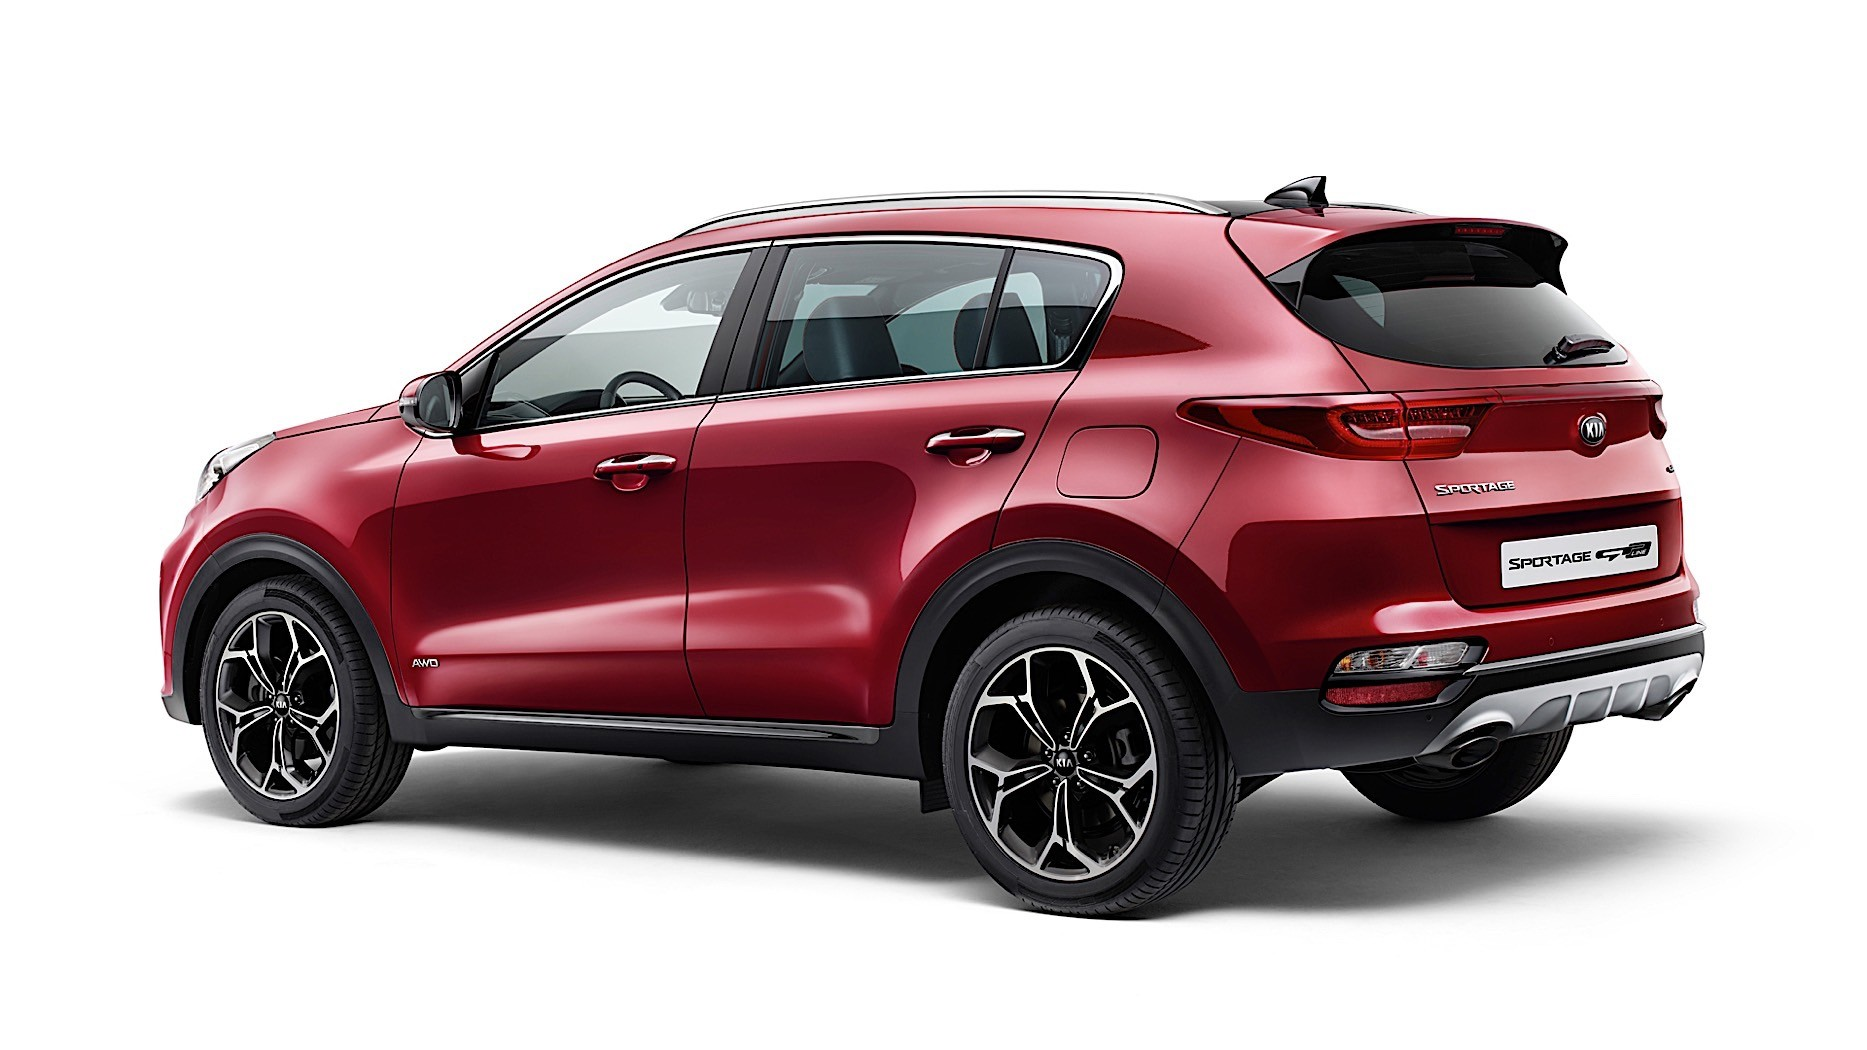 2019 kia sportage facelift gets new ceed headlights in latest rendering autoevolution. Black Bedroom Furniture Sets. Home Design Ideas